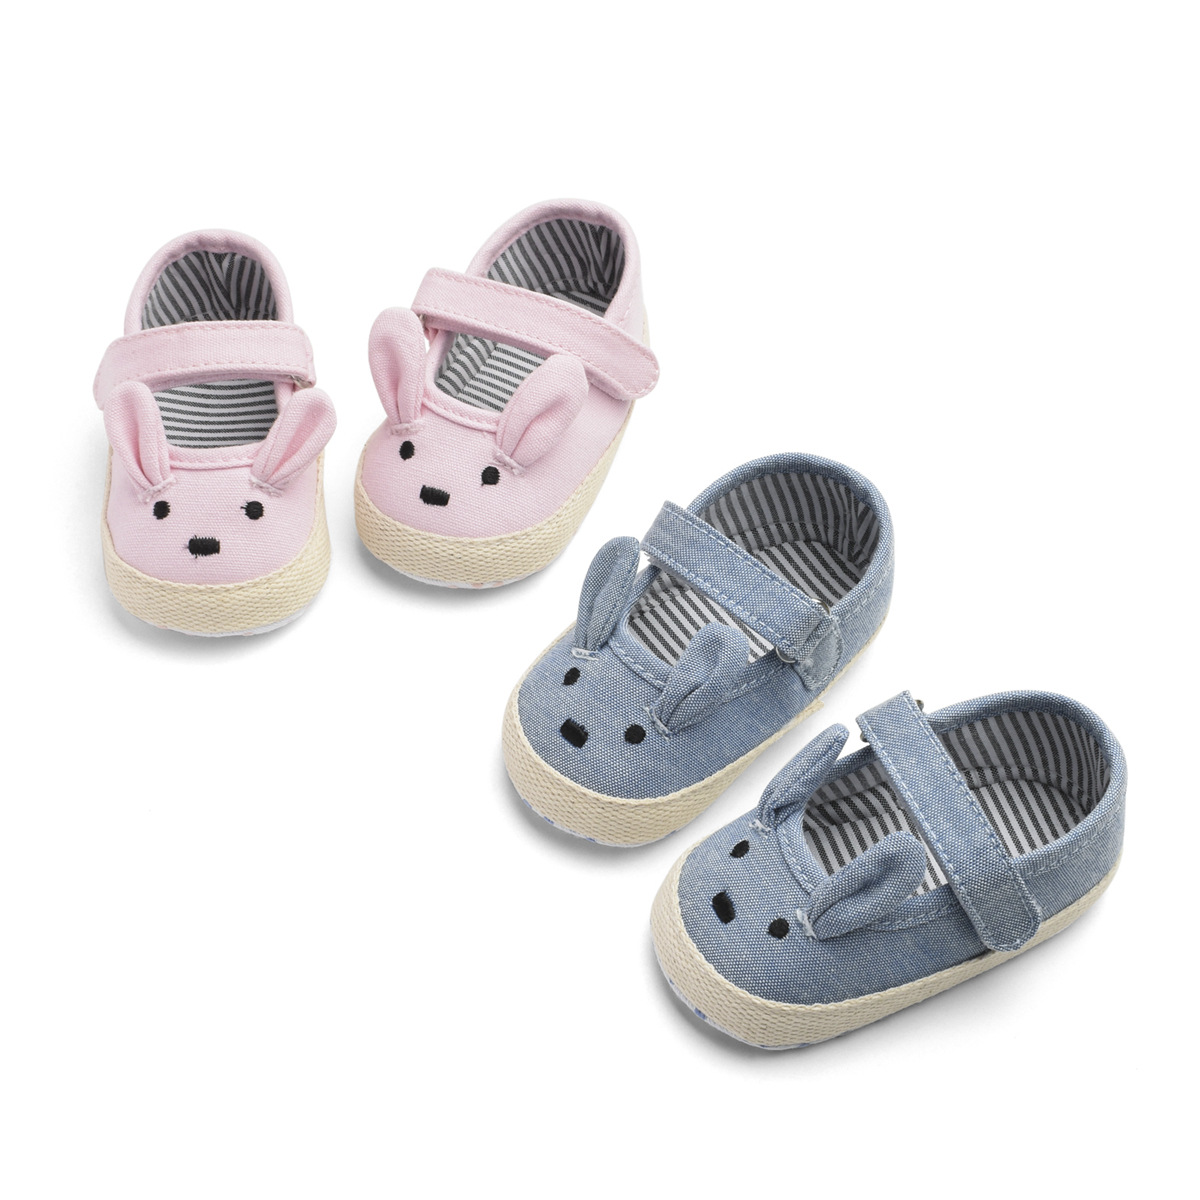 2019 Spring And Autumn Cute Bunny Female Toddler Toddler Shoes 0-1 Year Old Baby Soft Bottom Toddler Shoes Breathable